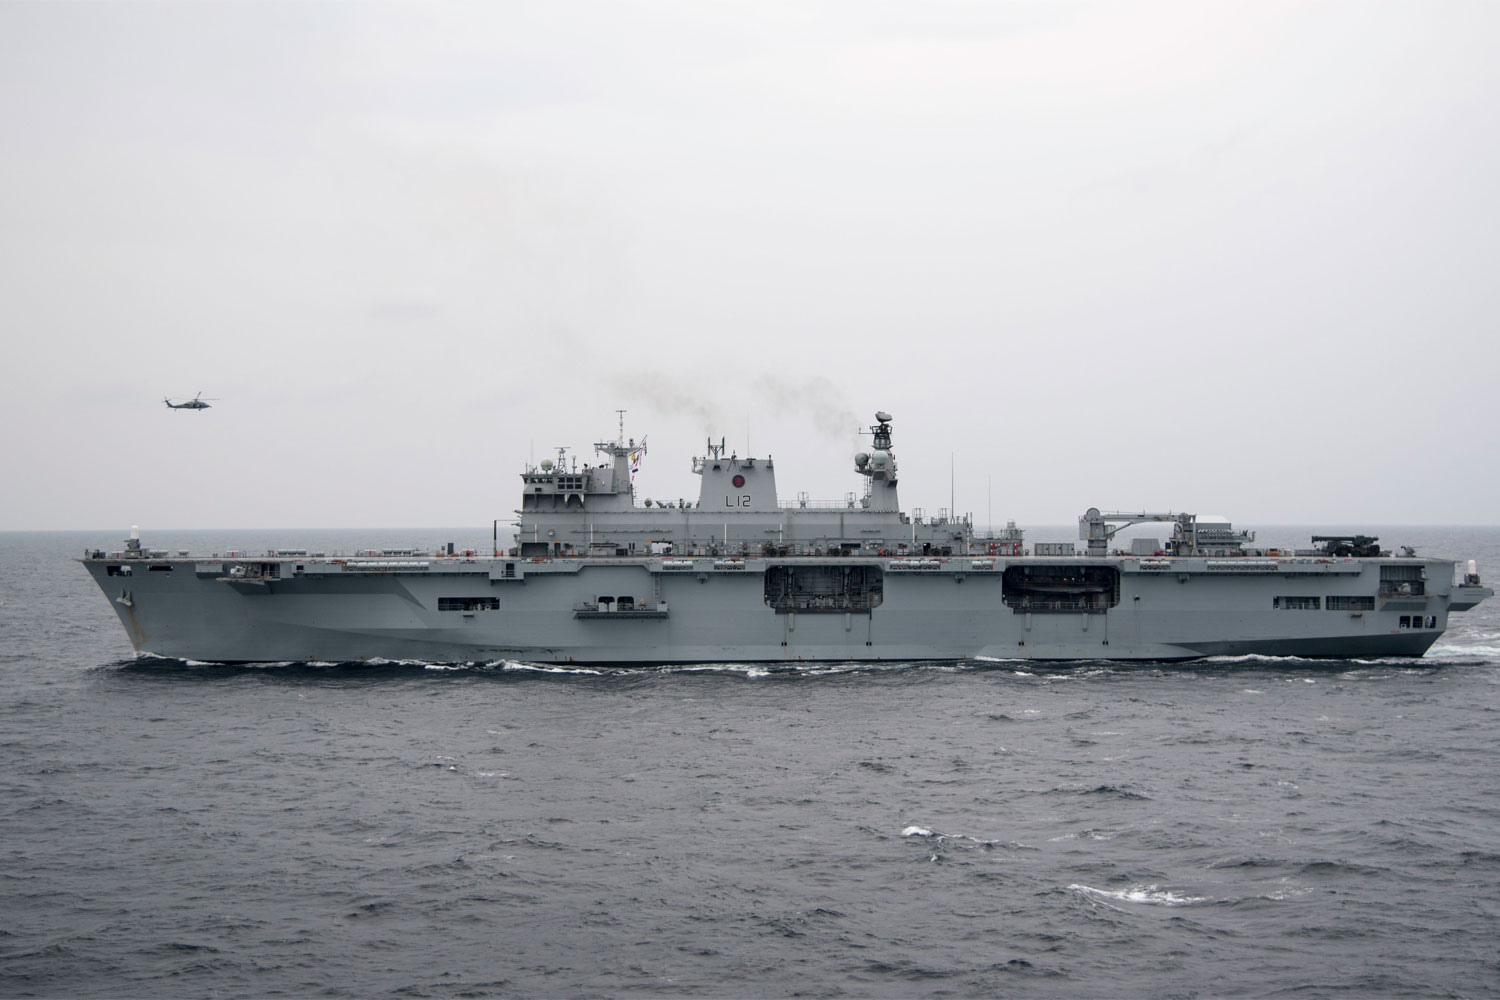 allied navy exercise begins in persian gulf amid iranian